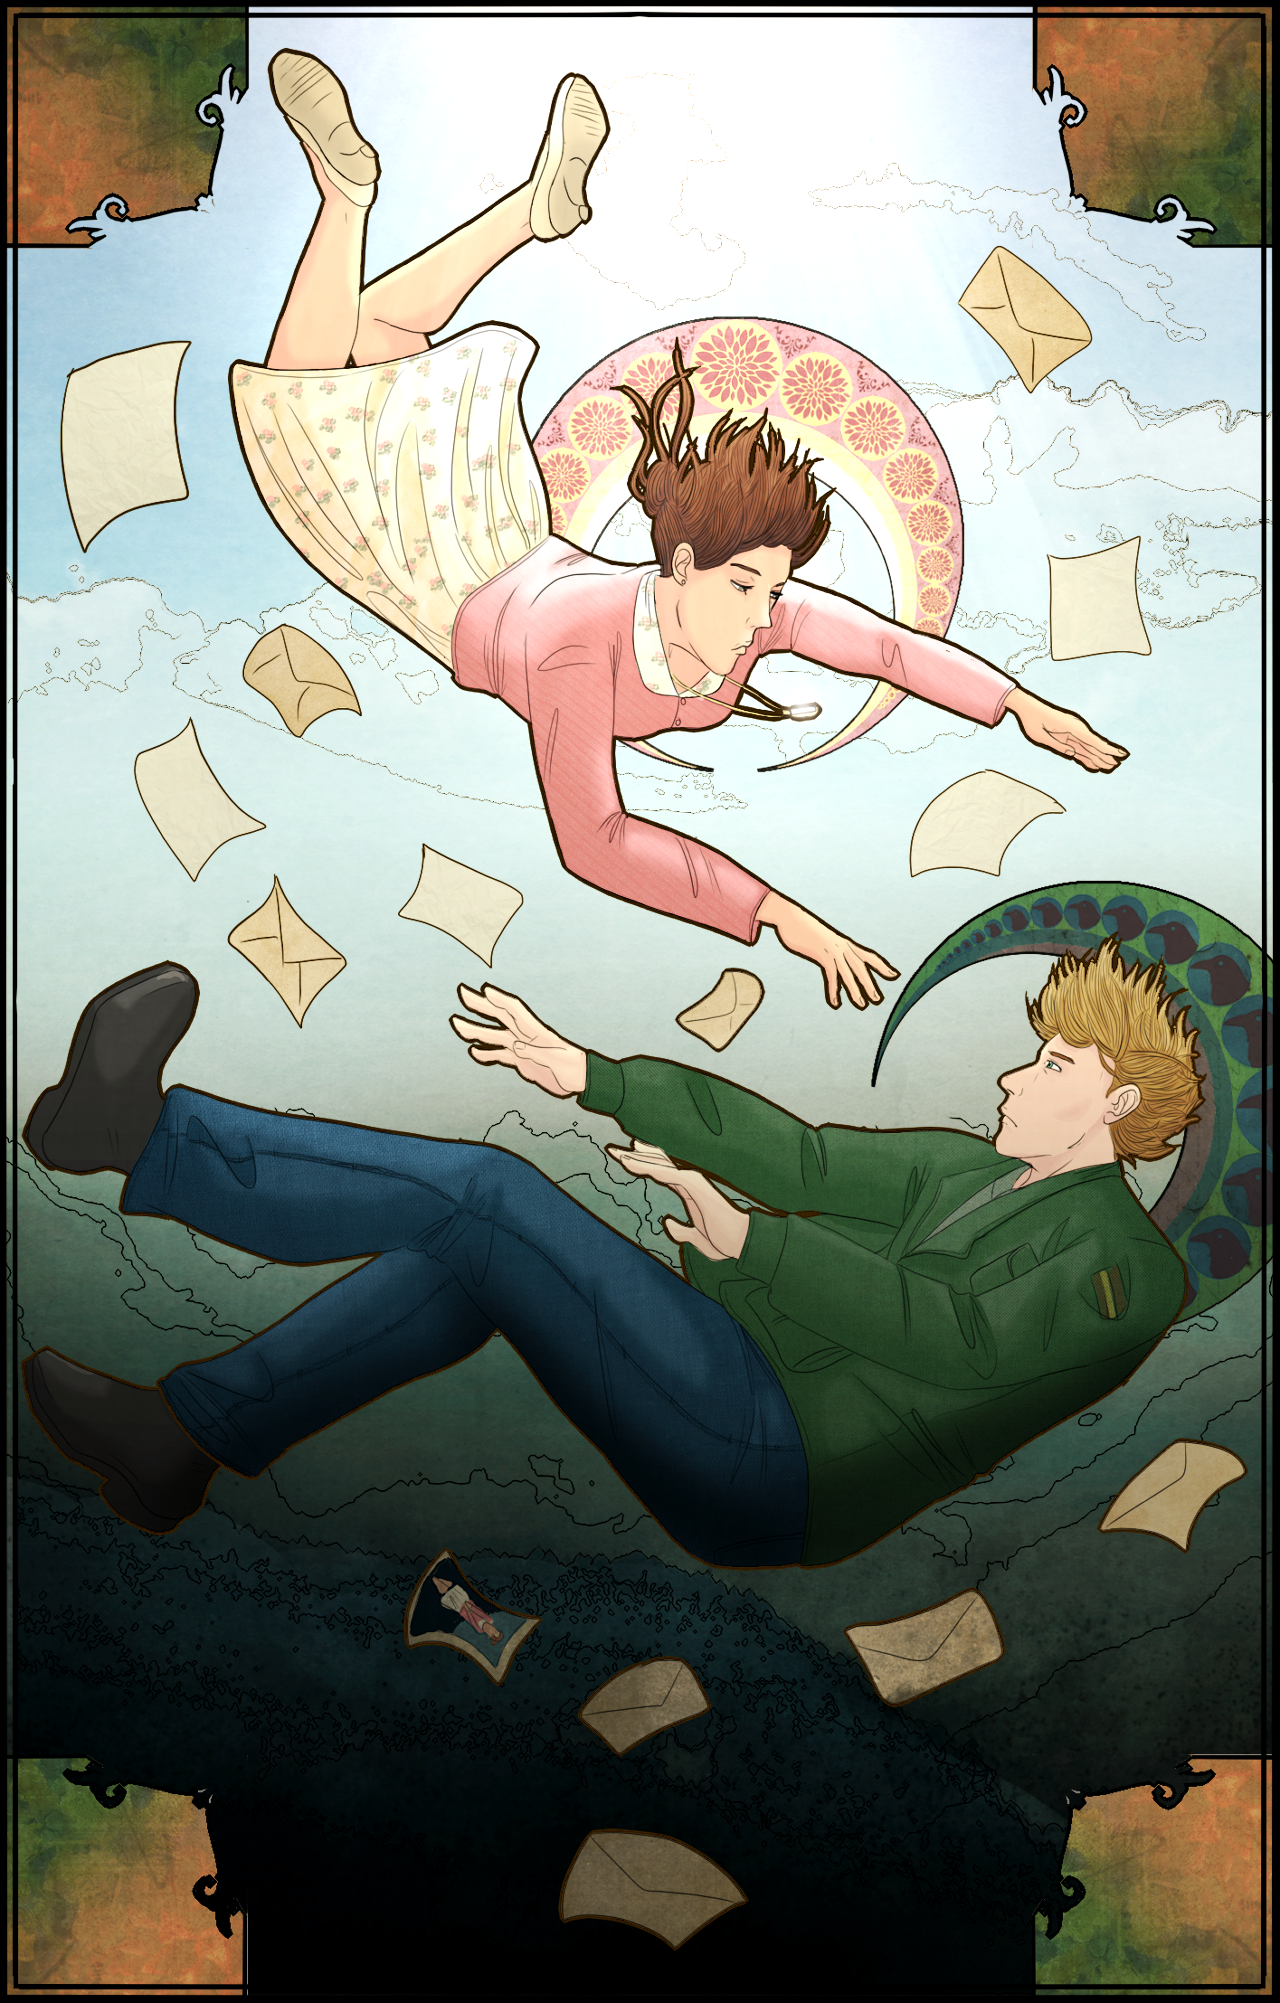 James and Mary: Sinking Hands by p-h-i-l-o-s